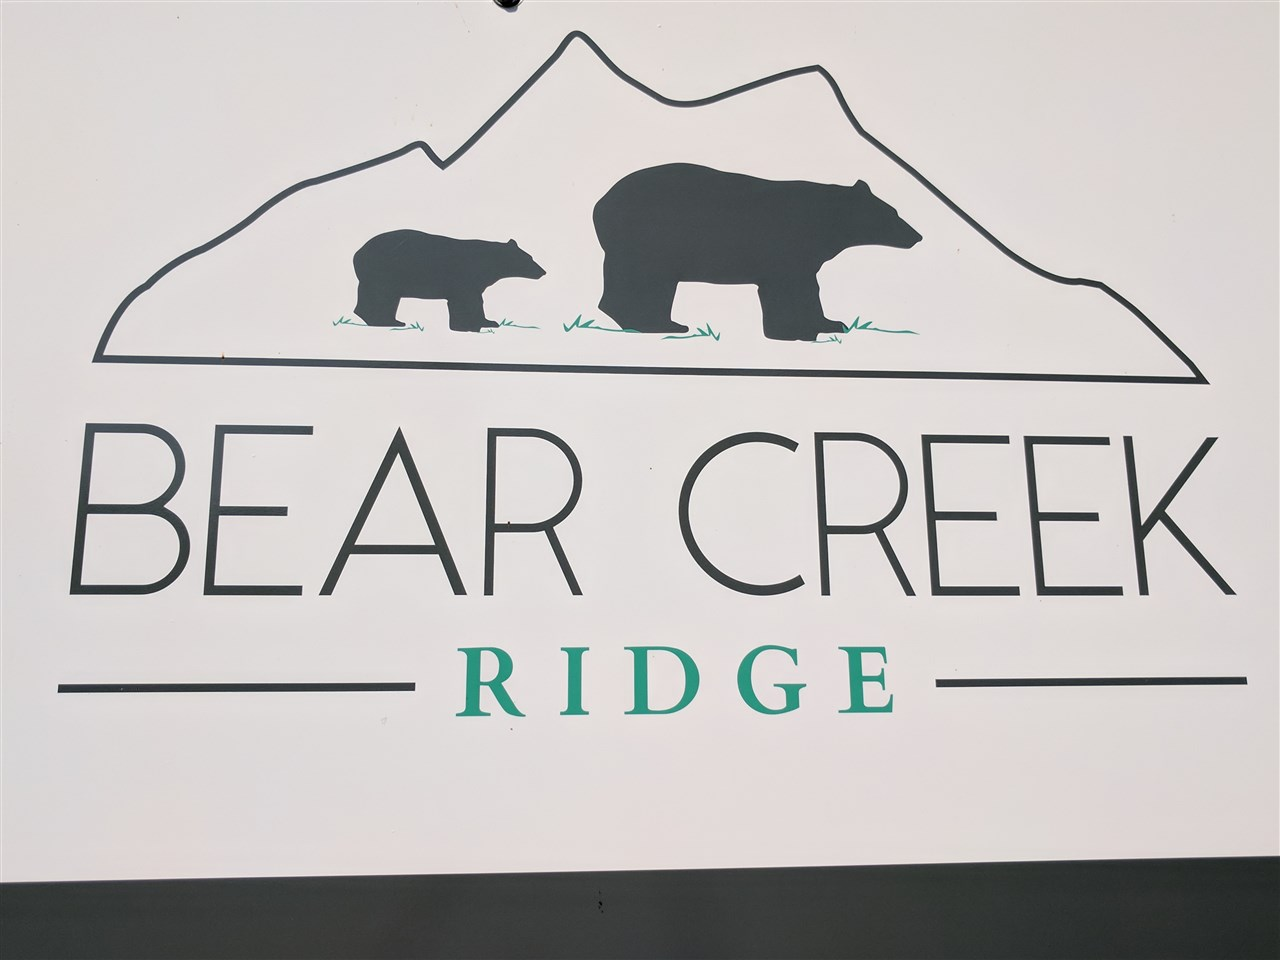 Bear Creek Ridge is a bare land strata of building lots that are now available on lower Promontory . Nice unobstructed view of Sardis and Vedder Crossing. A nice, quiet area to build your dream home. Roads and services are being installed and are expected to be completed this fall. Seller will build to suit or bring your builder. Call for details.